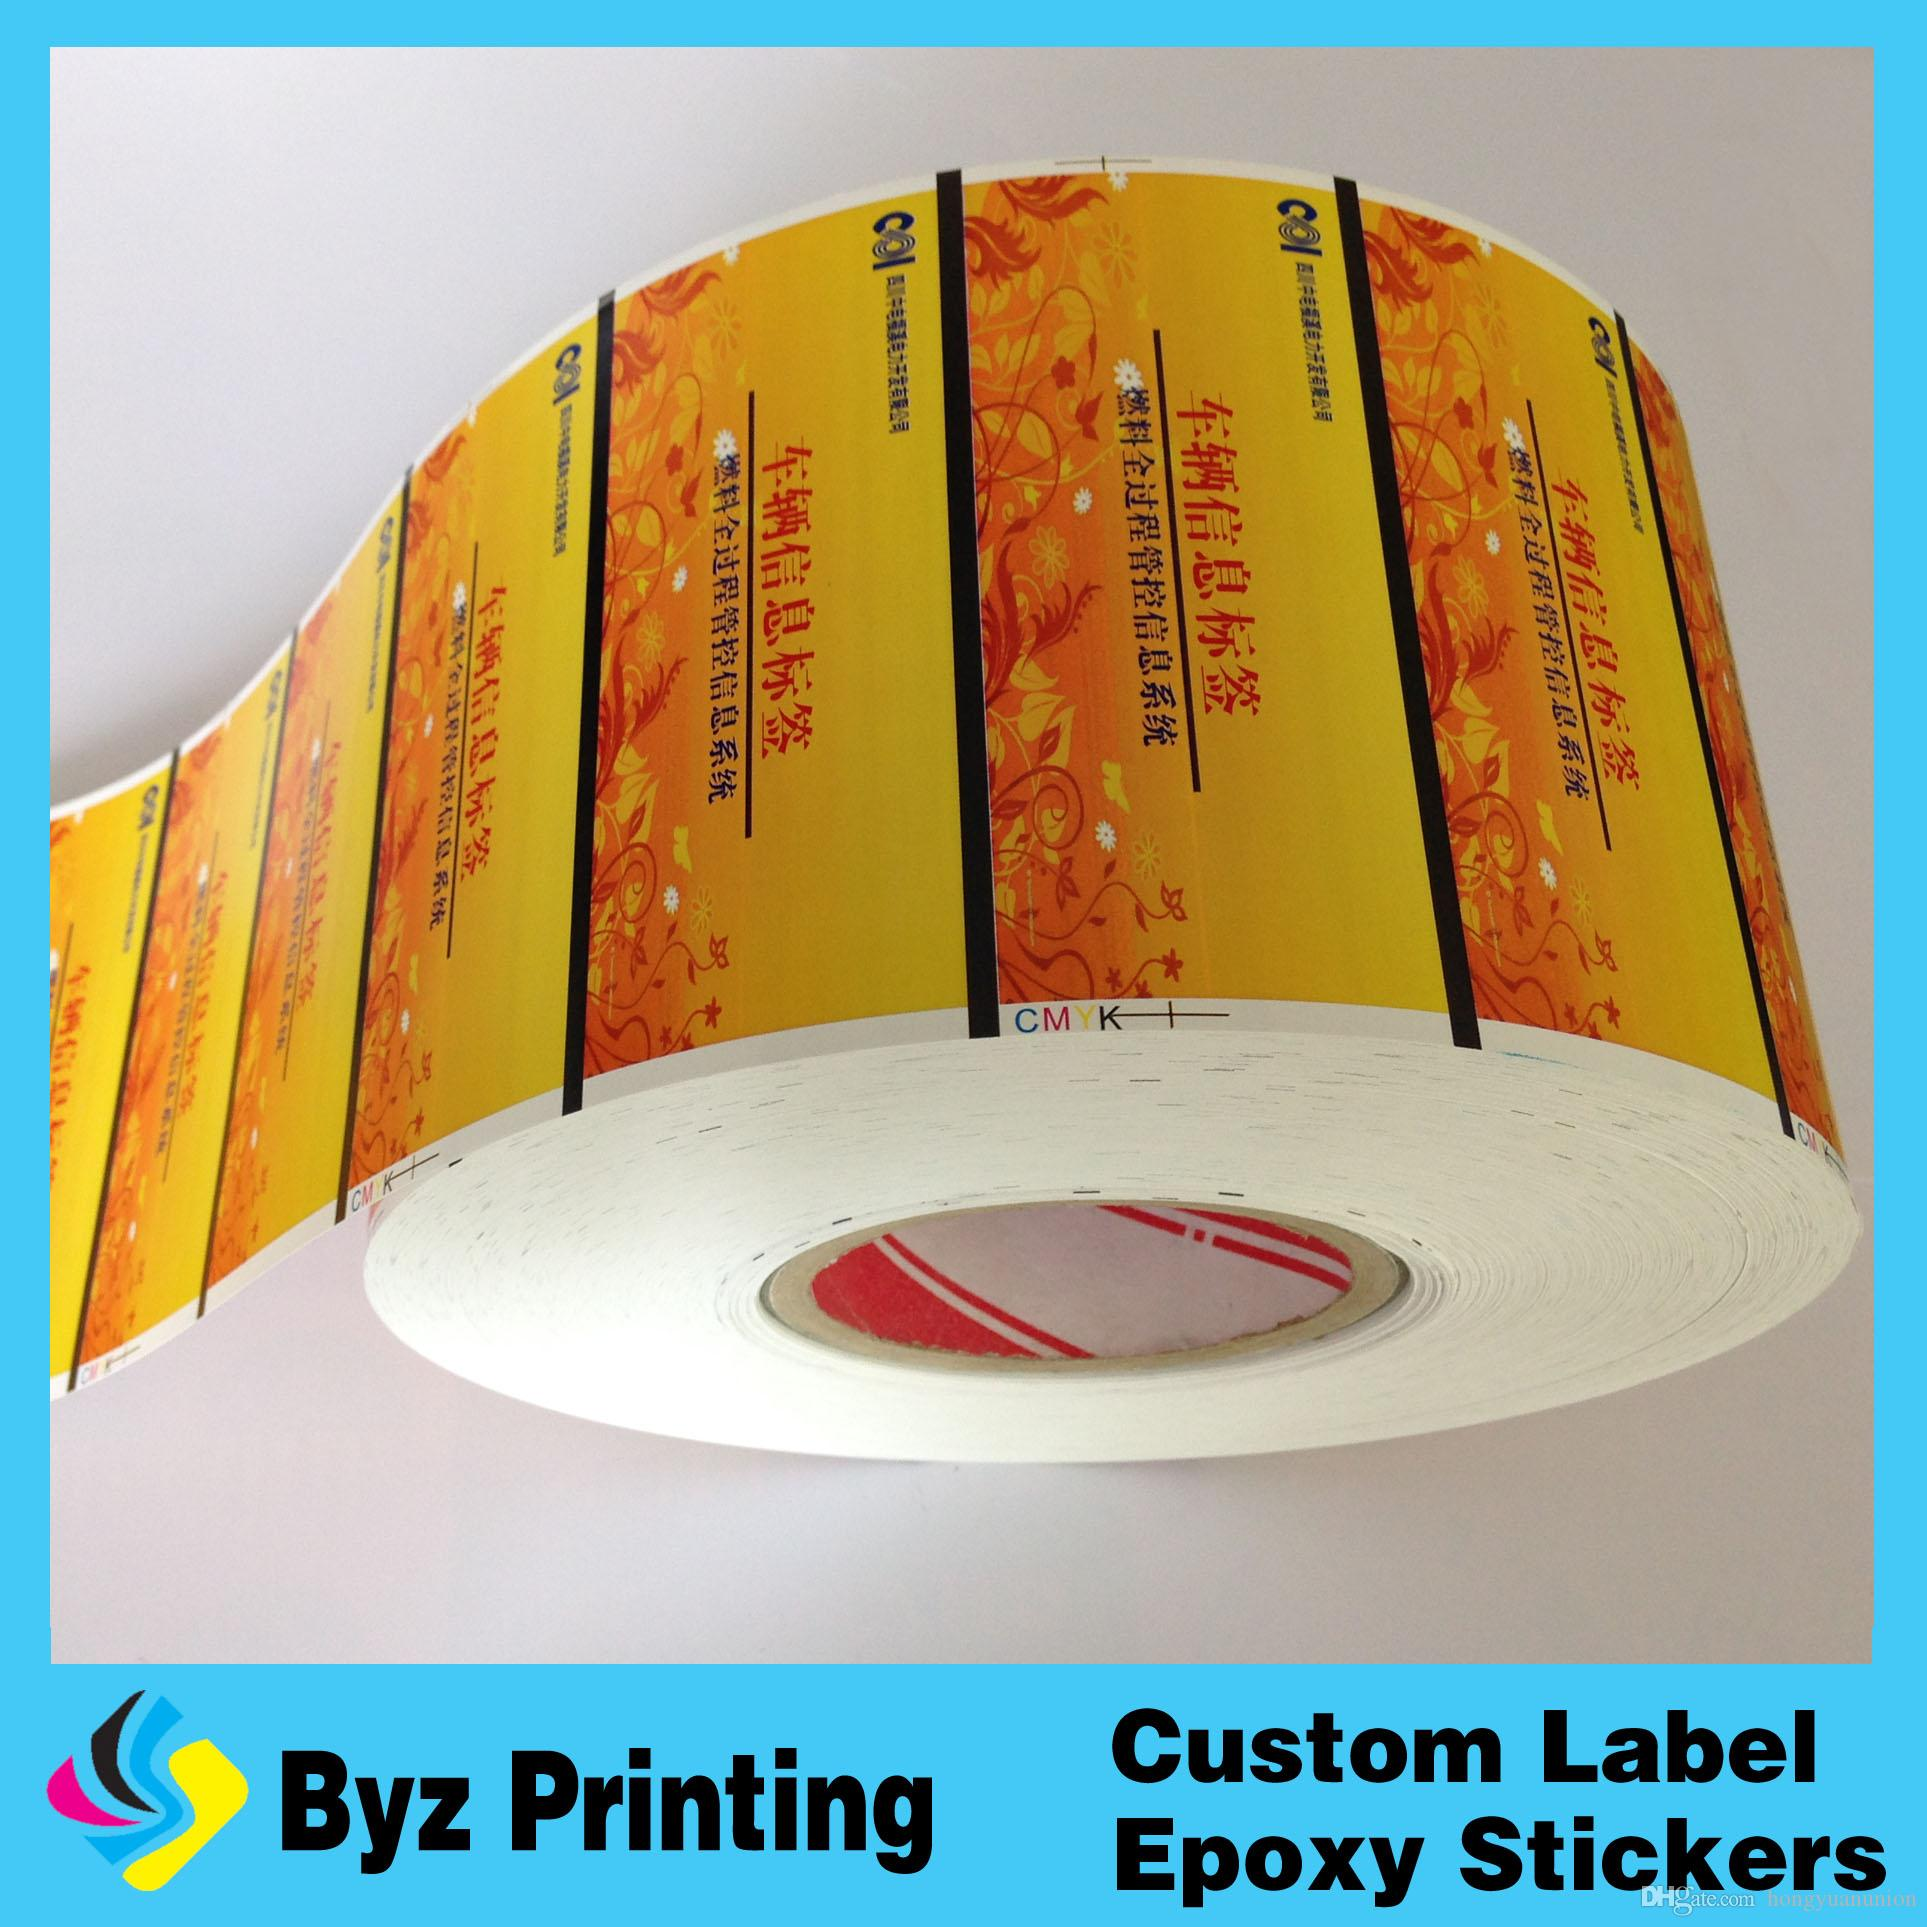 Full Color Glossy Custom Transparent Label Sticker, Vinyl Hologram Sticker  Printing Label Sticker Sticker Printing Vinyl Hologram Sticker Printing  Online ...